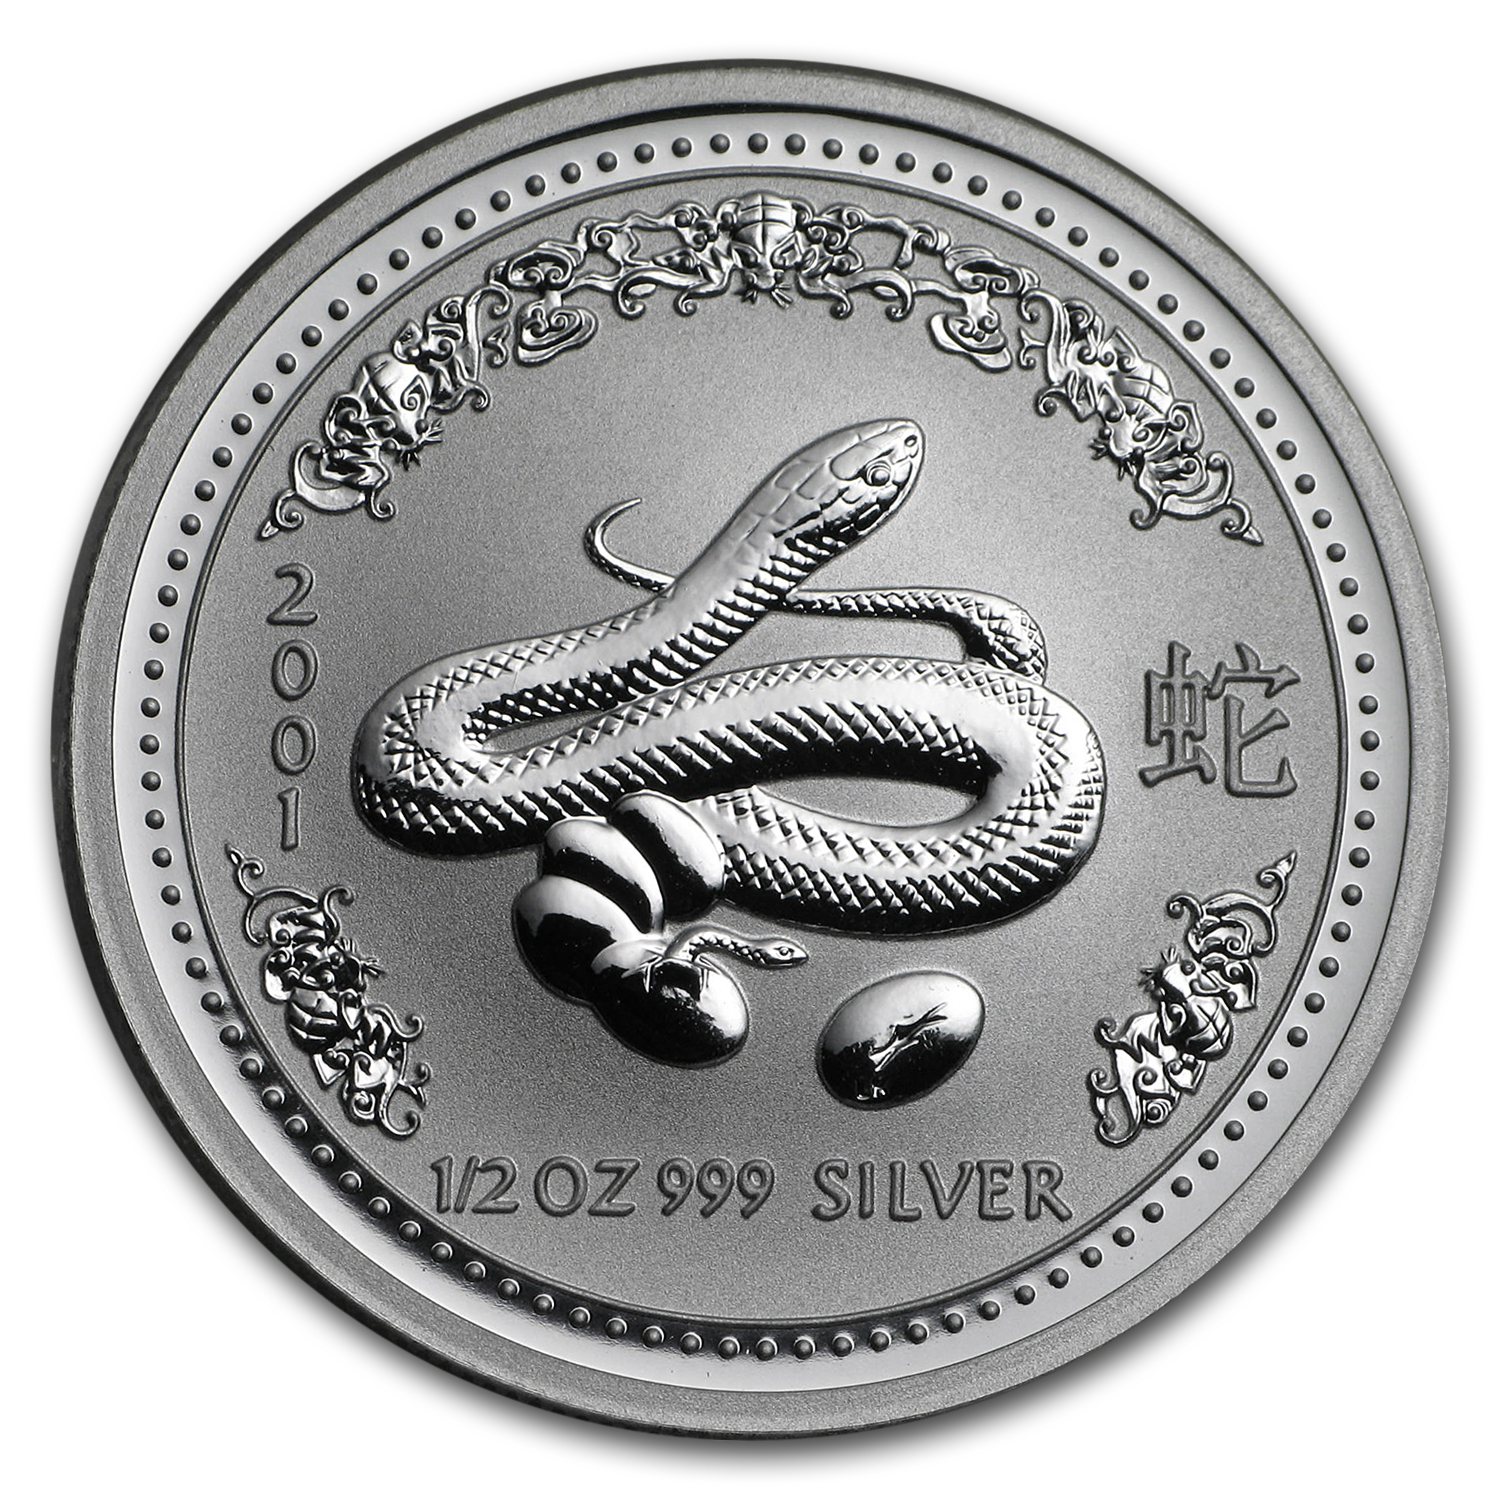 2001 1/2 oz Silver Australian Year of the Snake BU